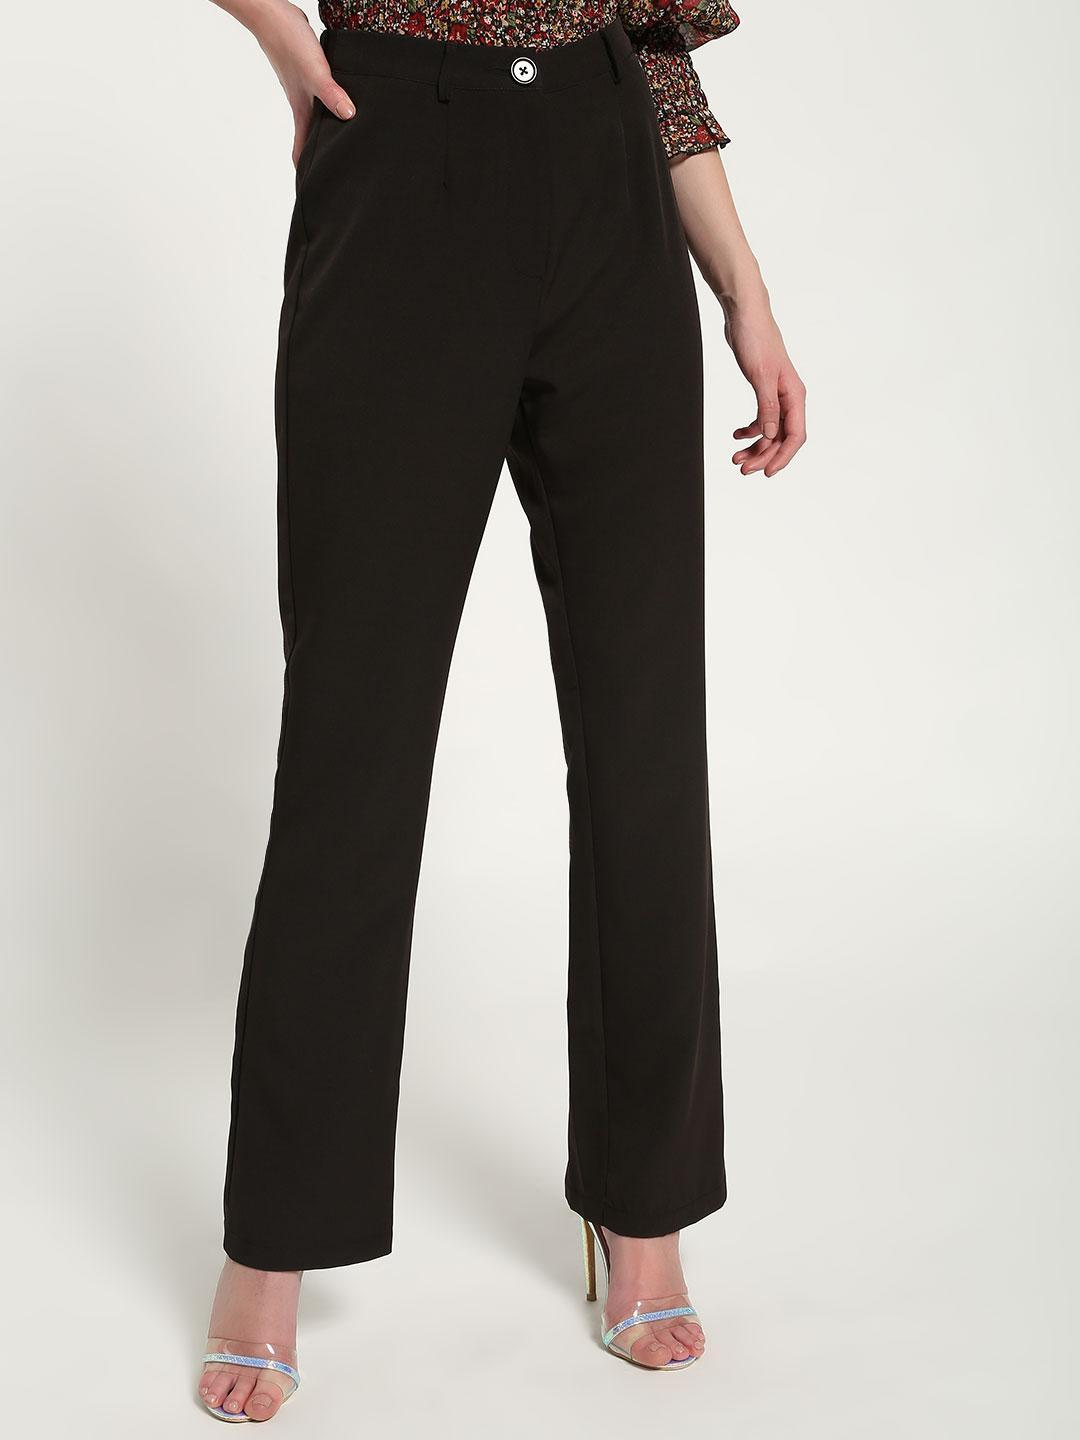 Missguided Black High-Waist Formal Trousers 1